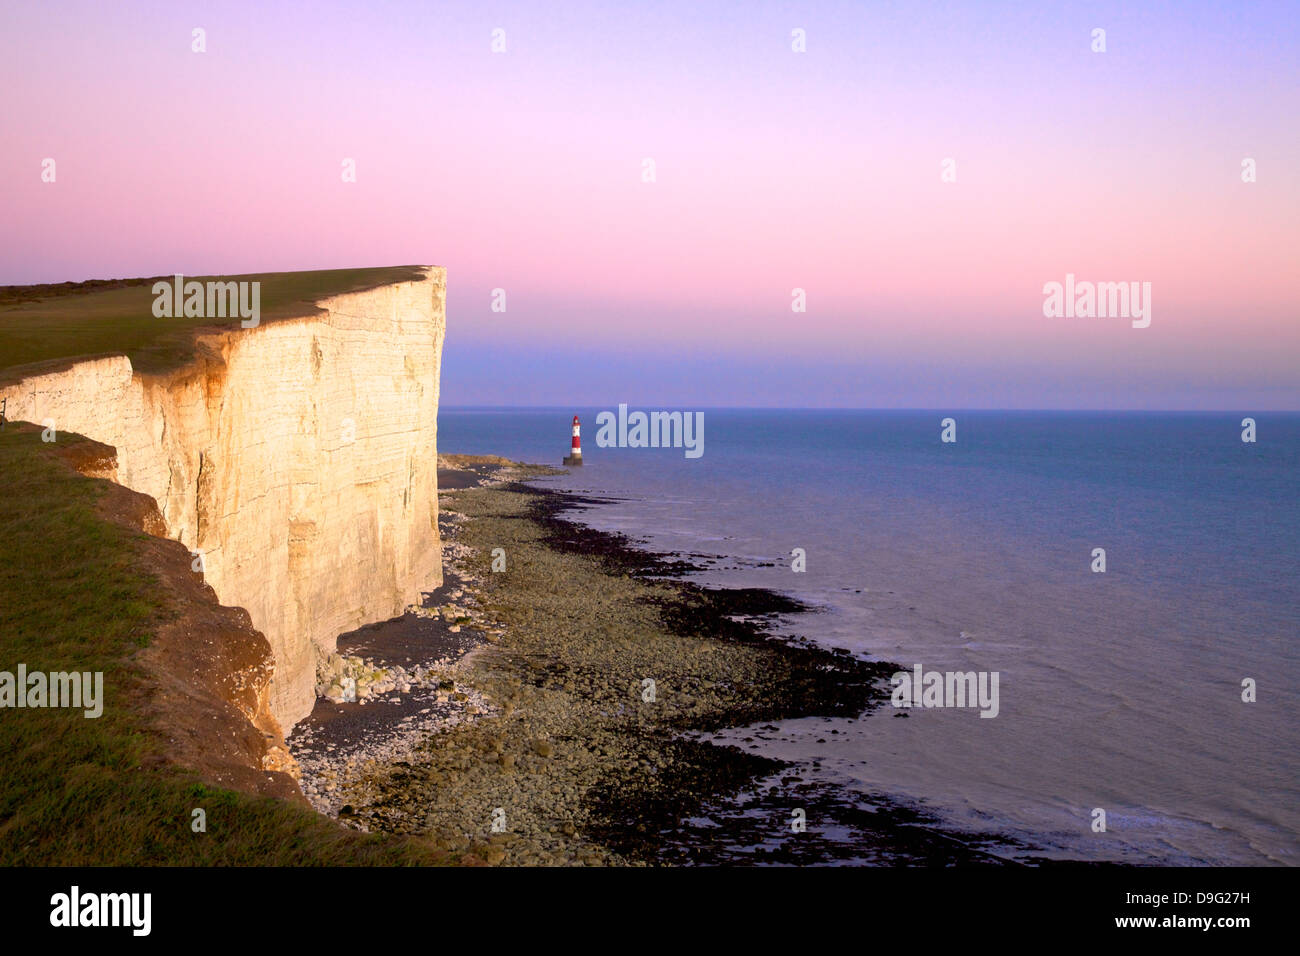 Beachy Head and Beachy Head Lighthouse at sunset, East Sussex, England, UK - Stock Image